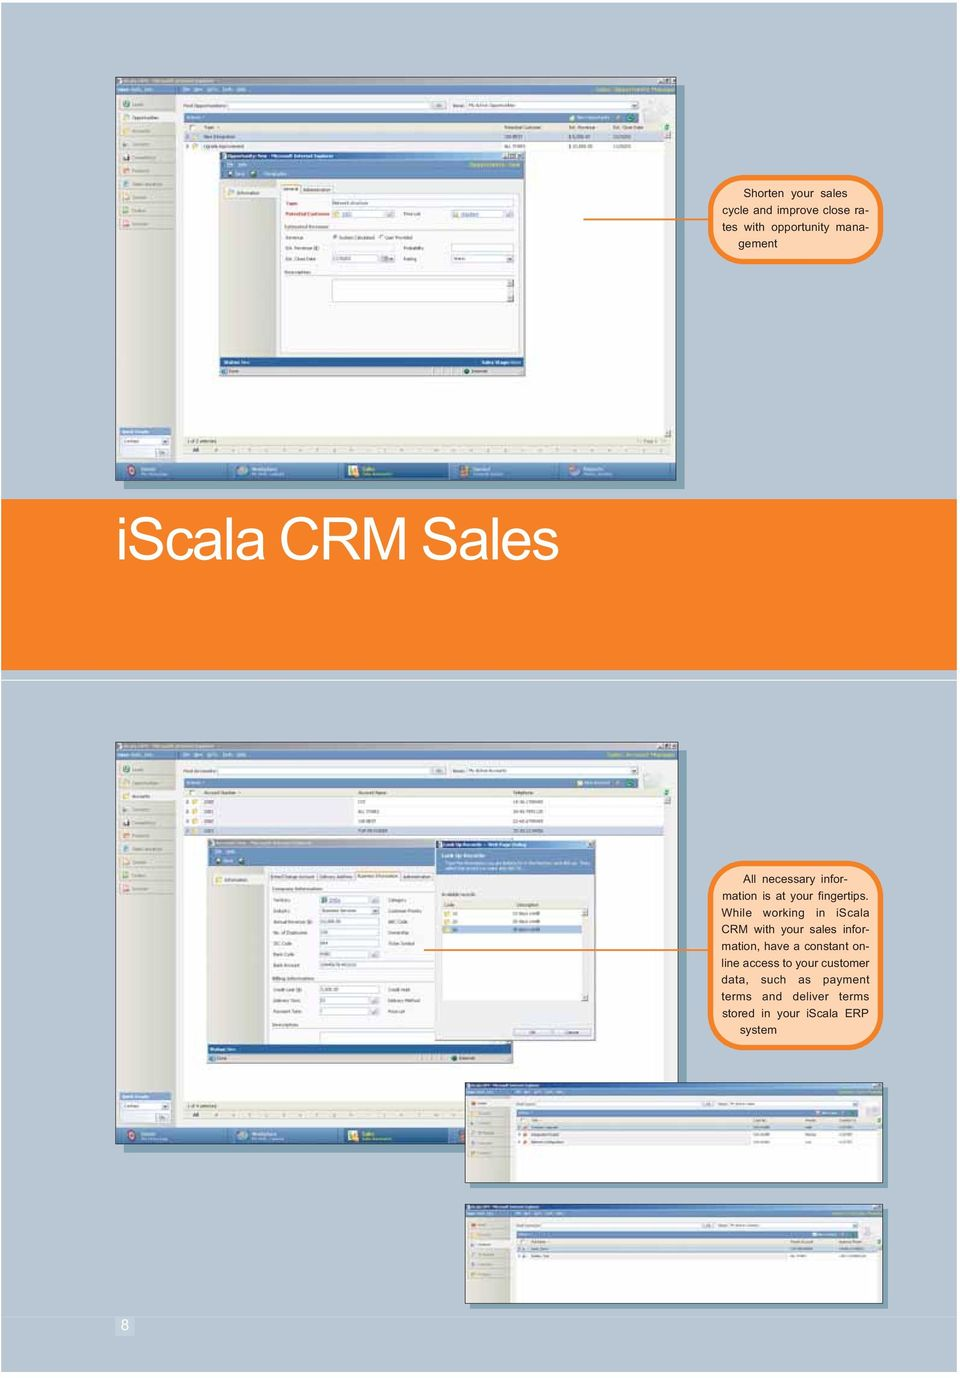 While working in iscala CRM with your sales information, have a constant online